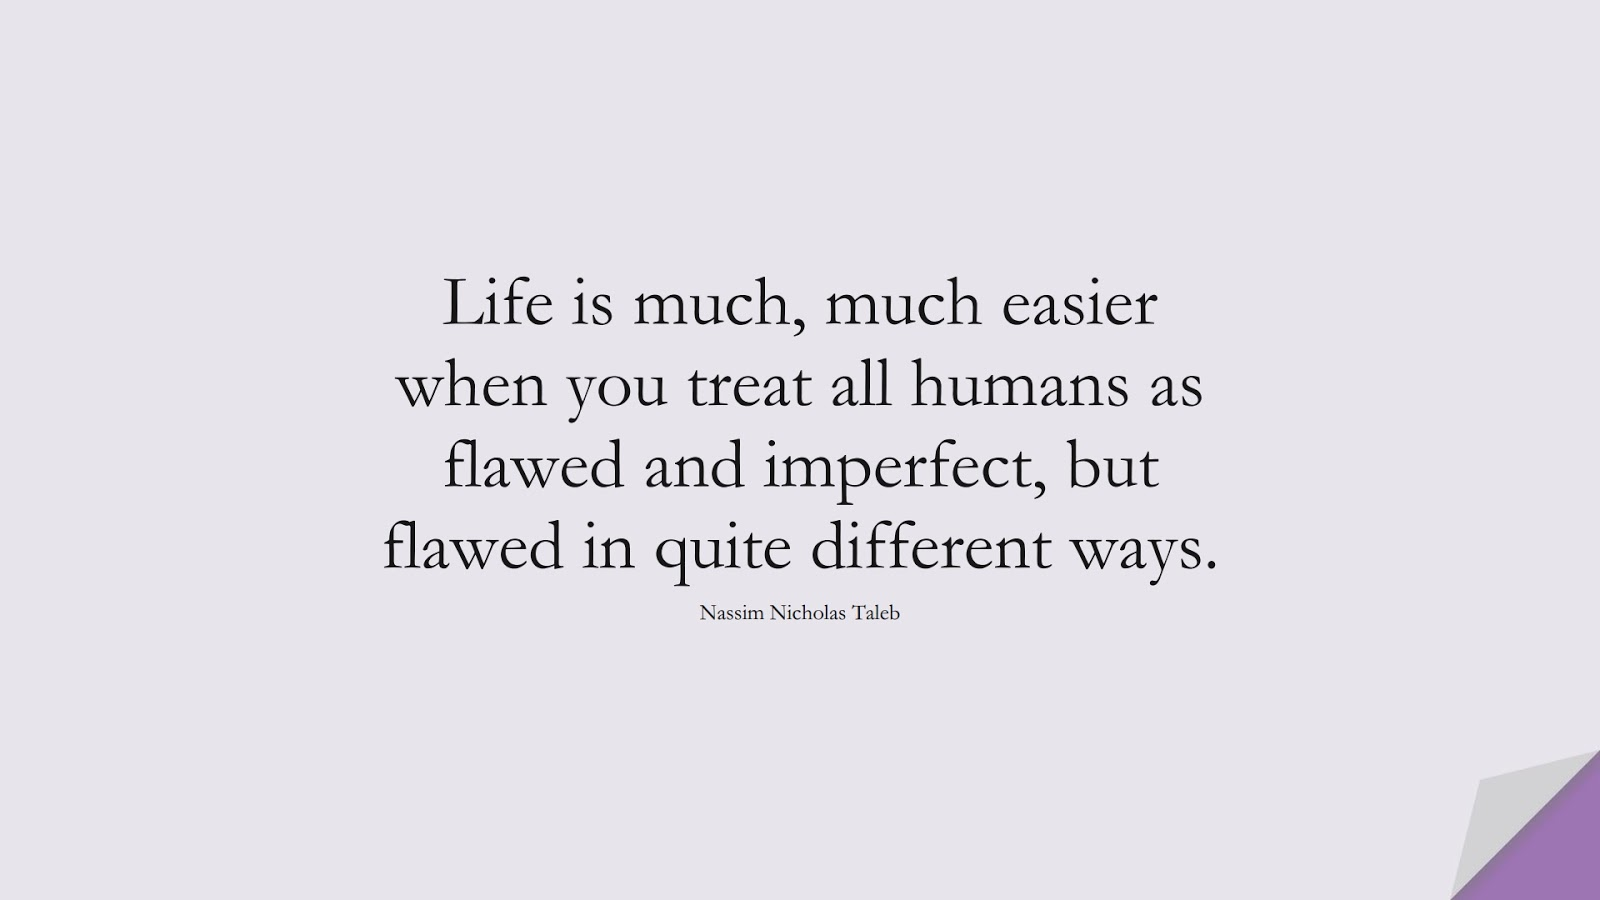 Life is much, much easier when you treat all humans as flawed and imperfect, but flawed in quite different ways. (Nassim Nicholas Taleb);  #RelationshipQuotes